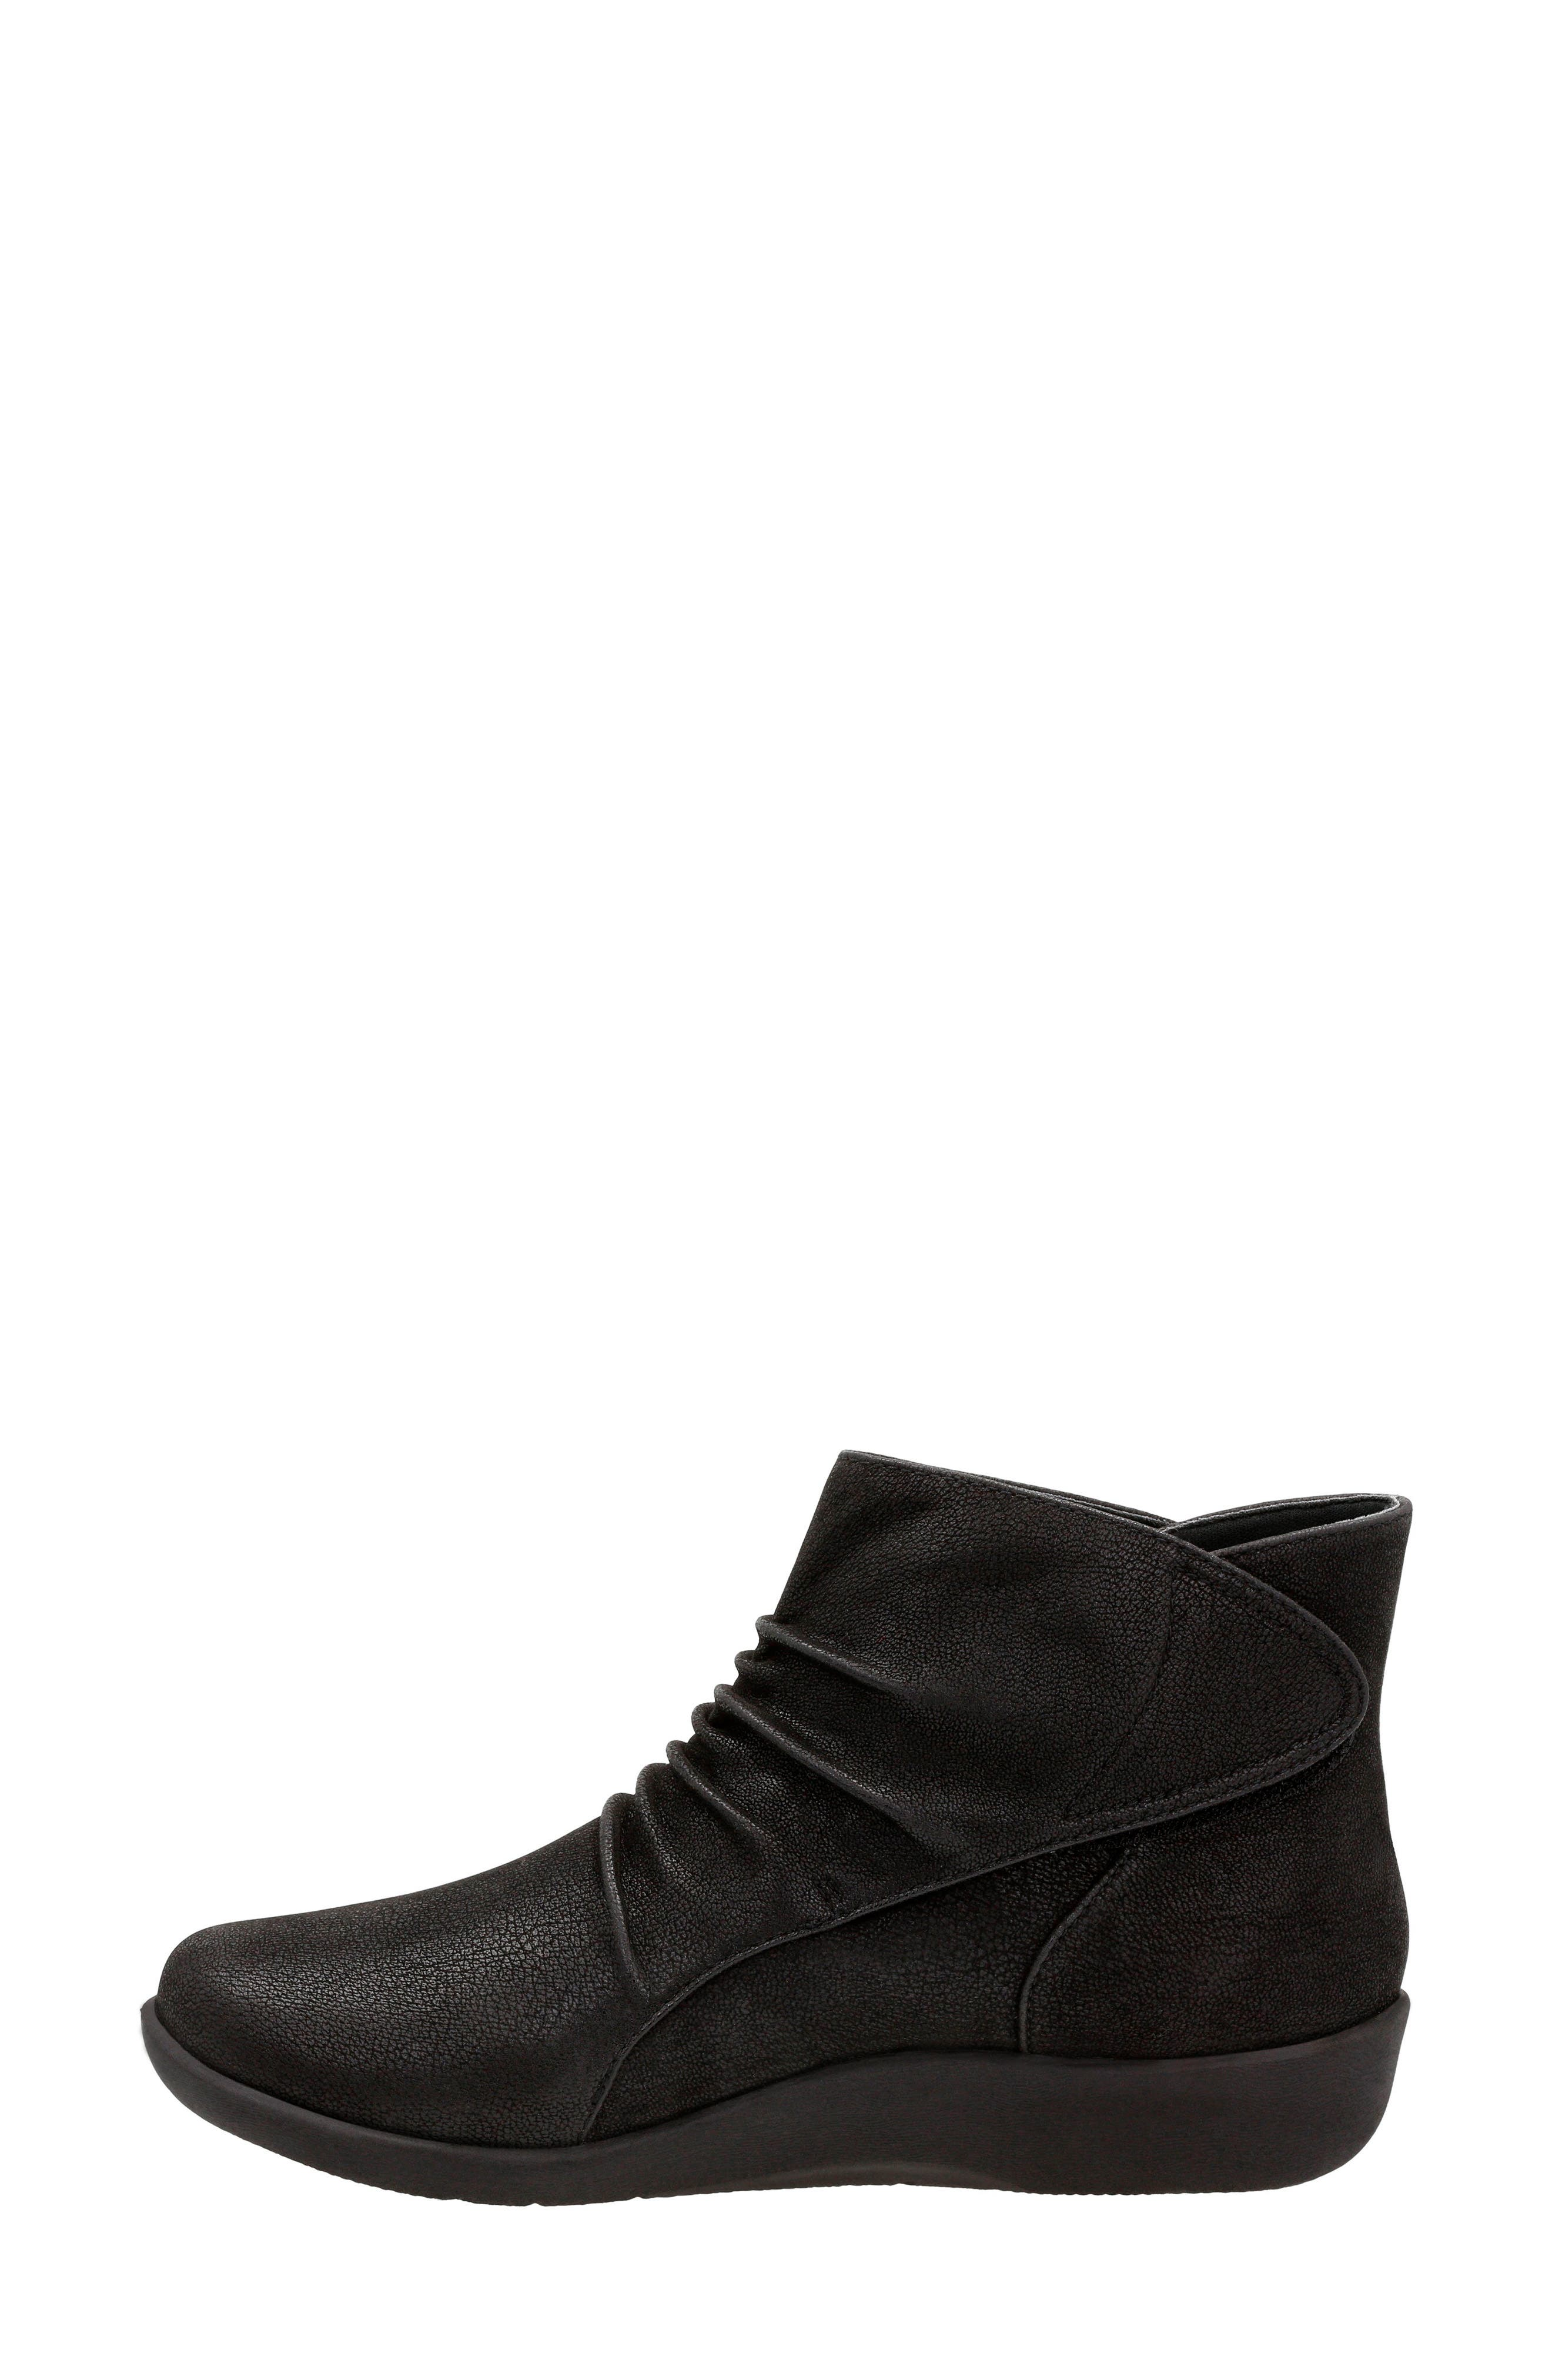 Sillian Sway Boot,                             Alternate thumbnail 2, color,                             001